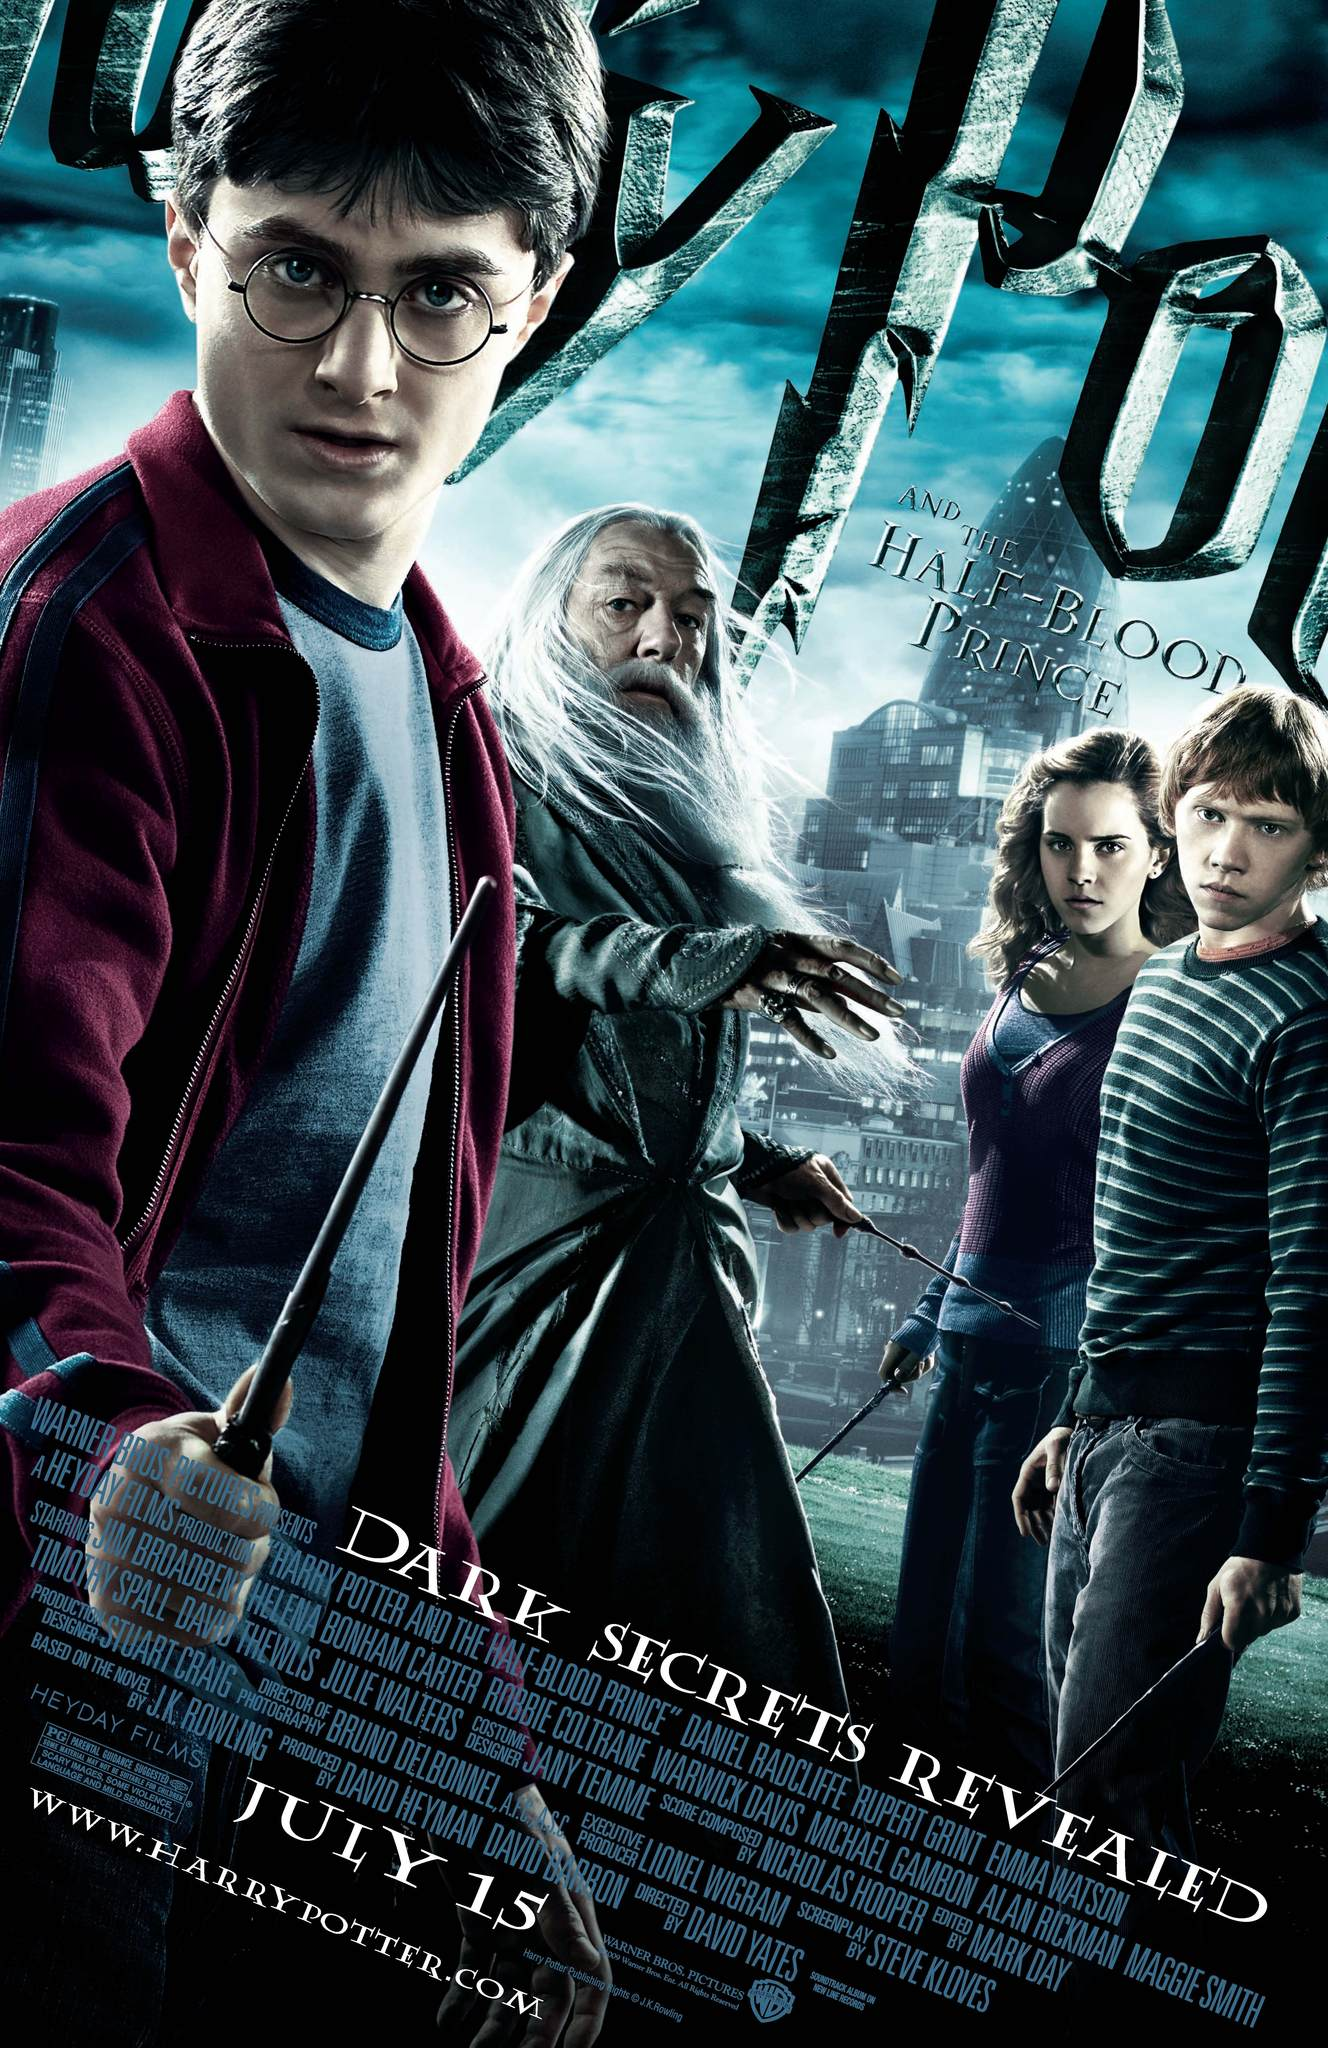 Harry Potter and the Half-Blood Prince (2009) BluRay 480p, 720p, 1080p & 4K-2160p